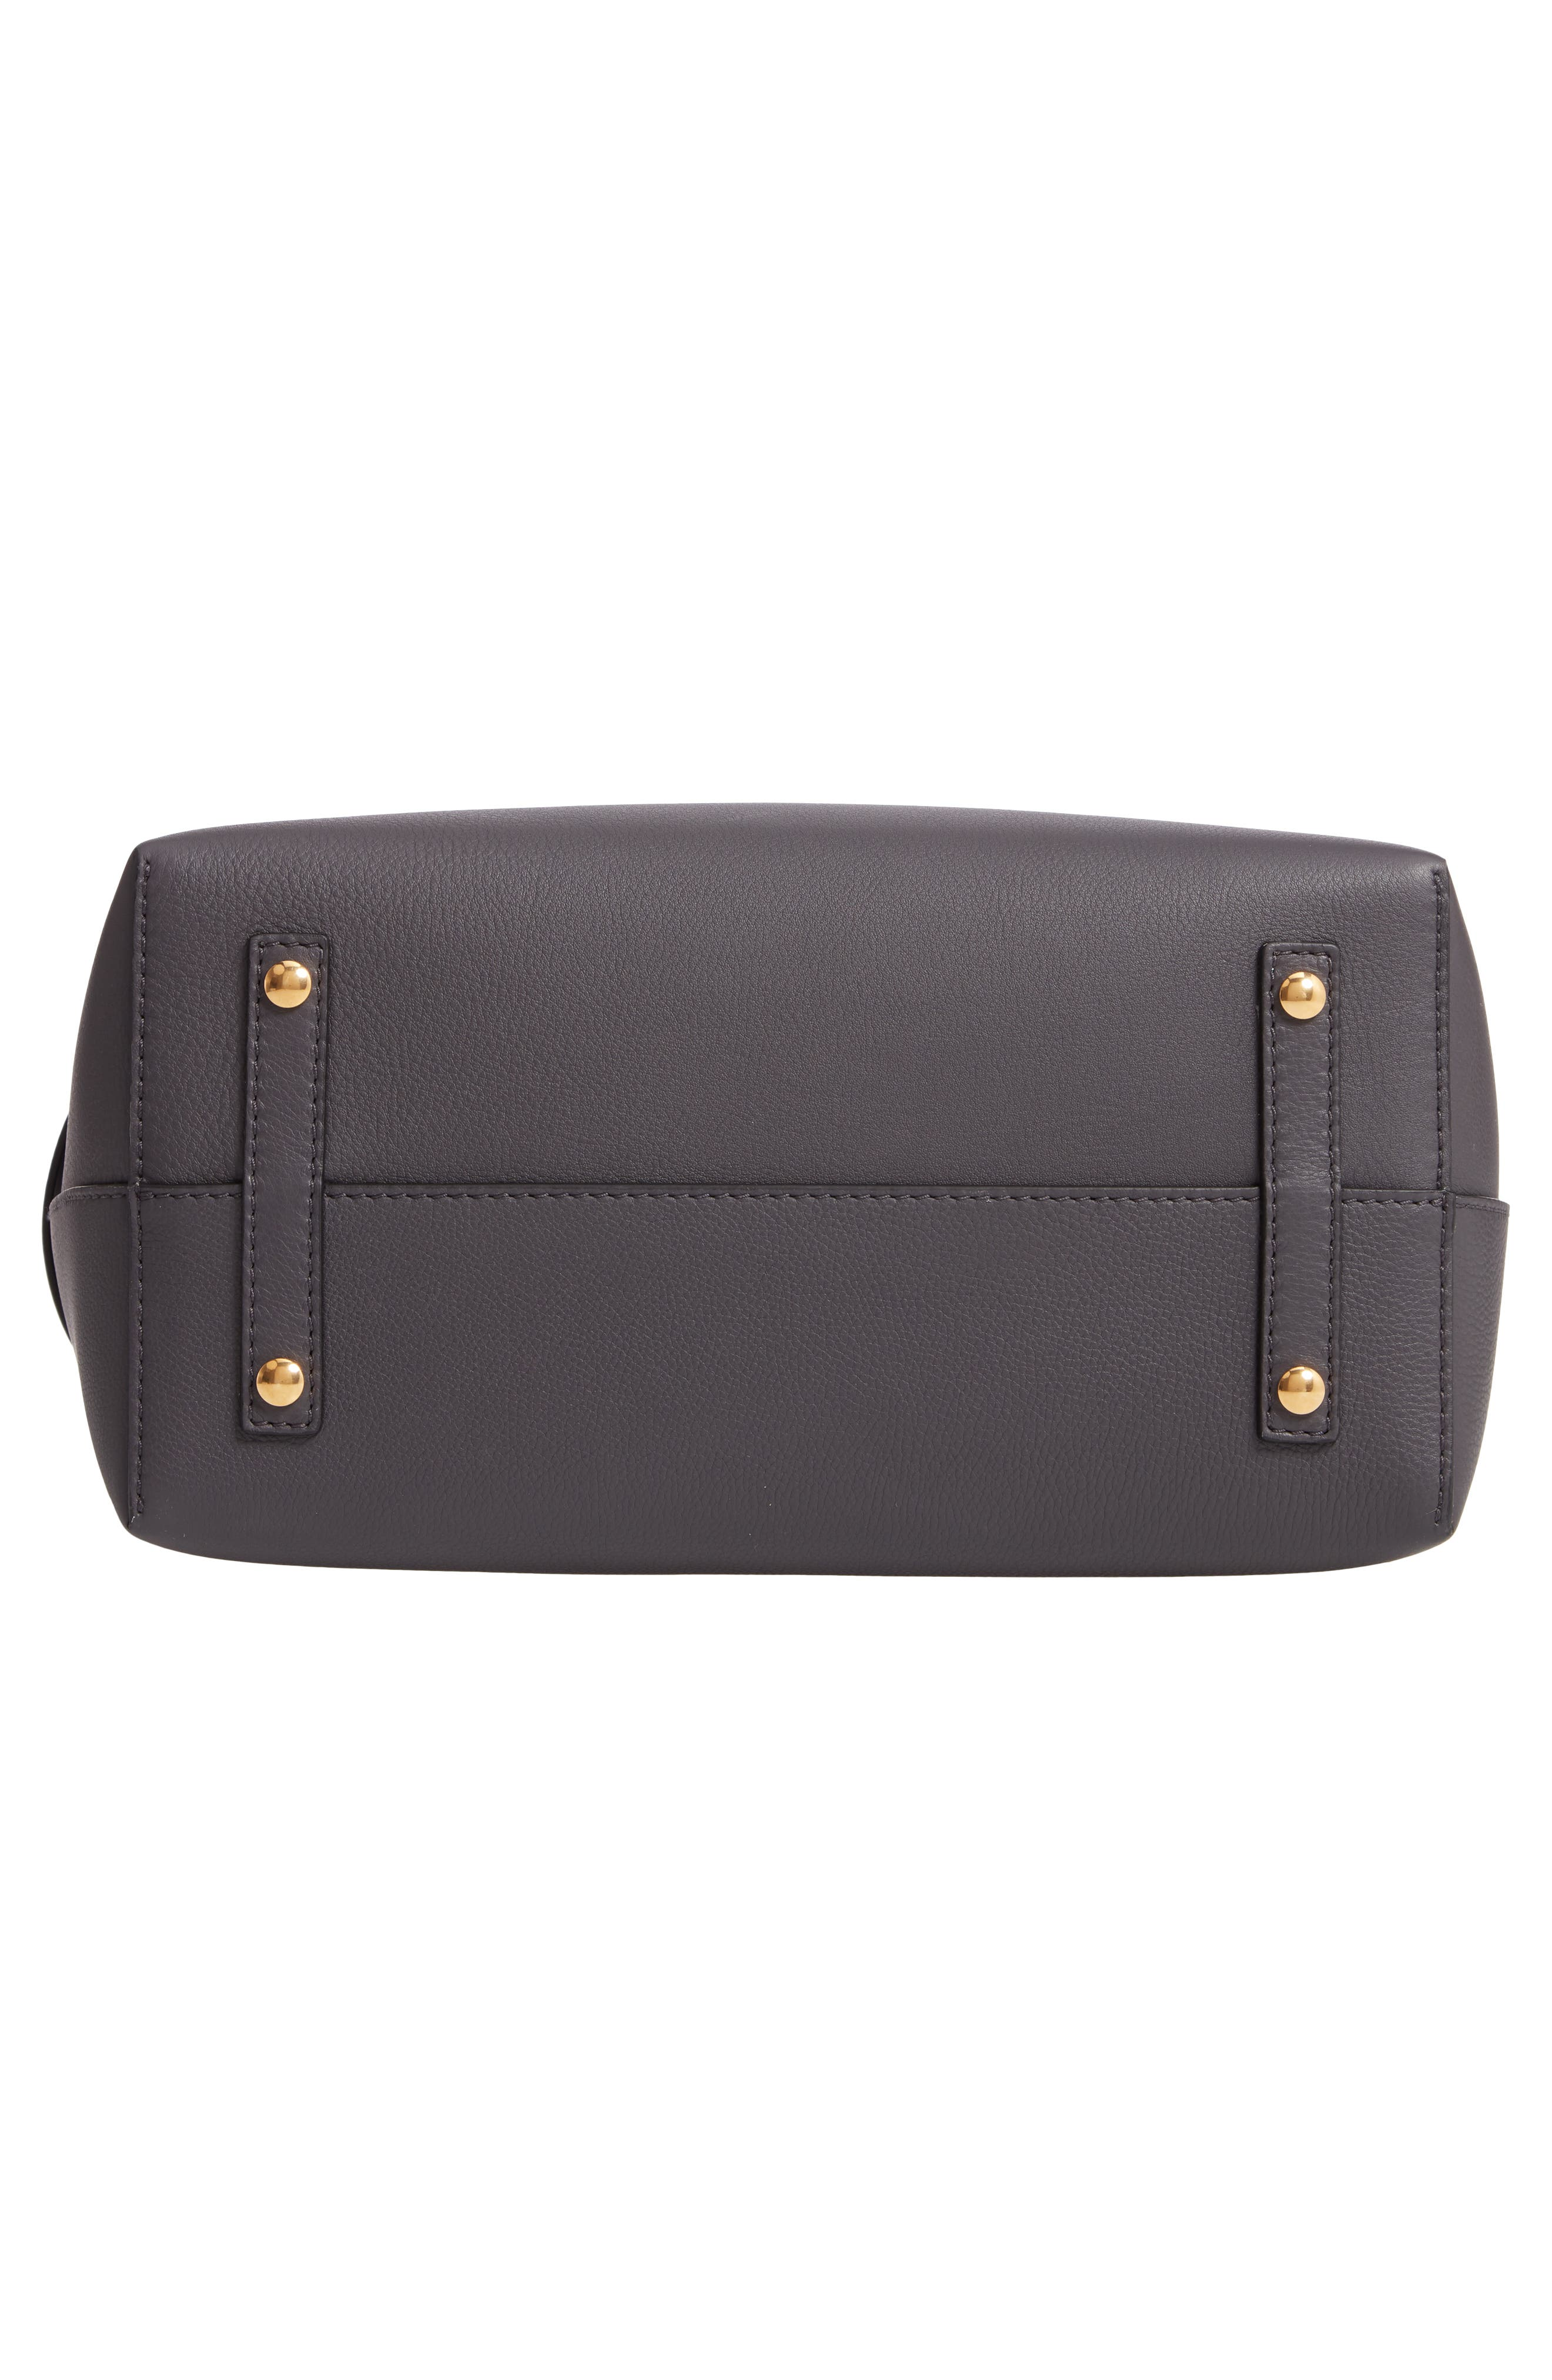 Medium Leather Belted Bag,                             Alternate thumbnail 6, color,                             CHARCOAL GREY